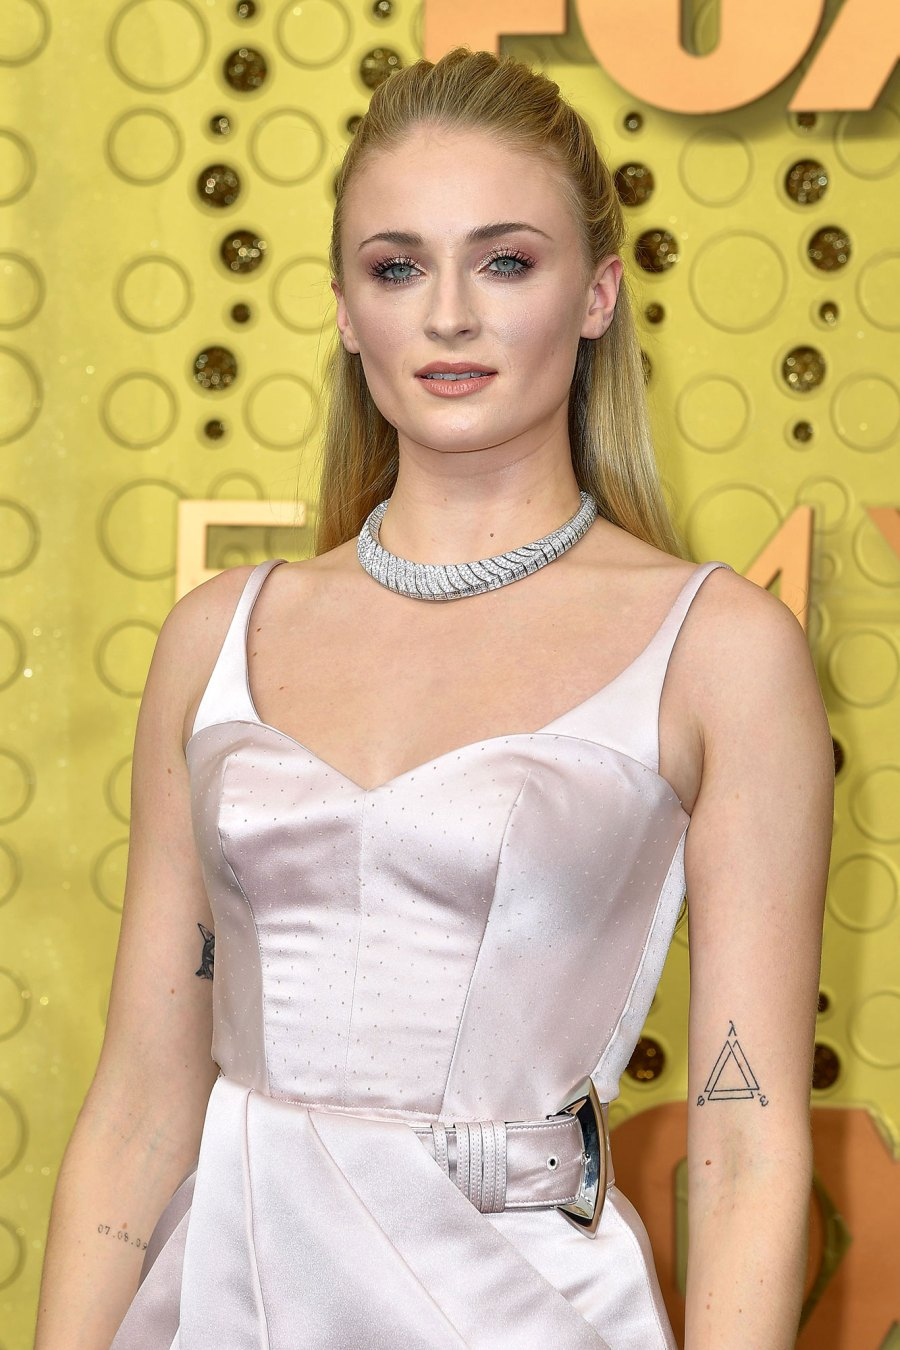 Sophie Turner What You Didn't See on TV Gallery Emmys 2019